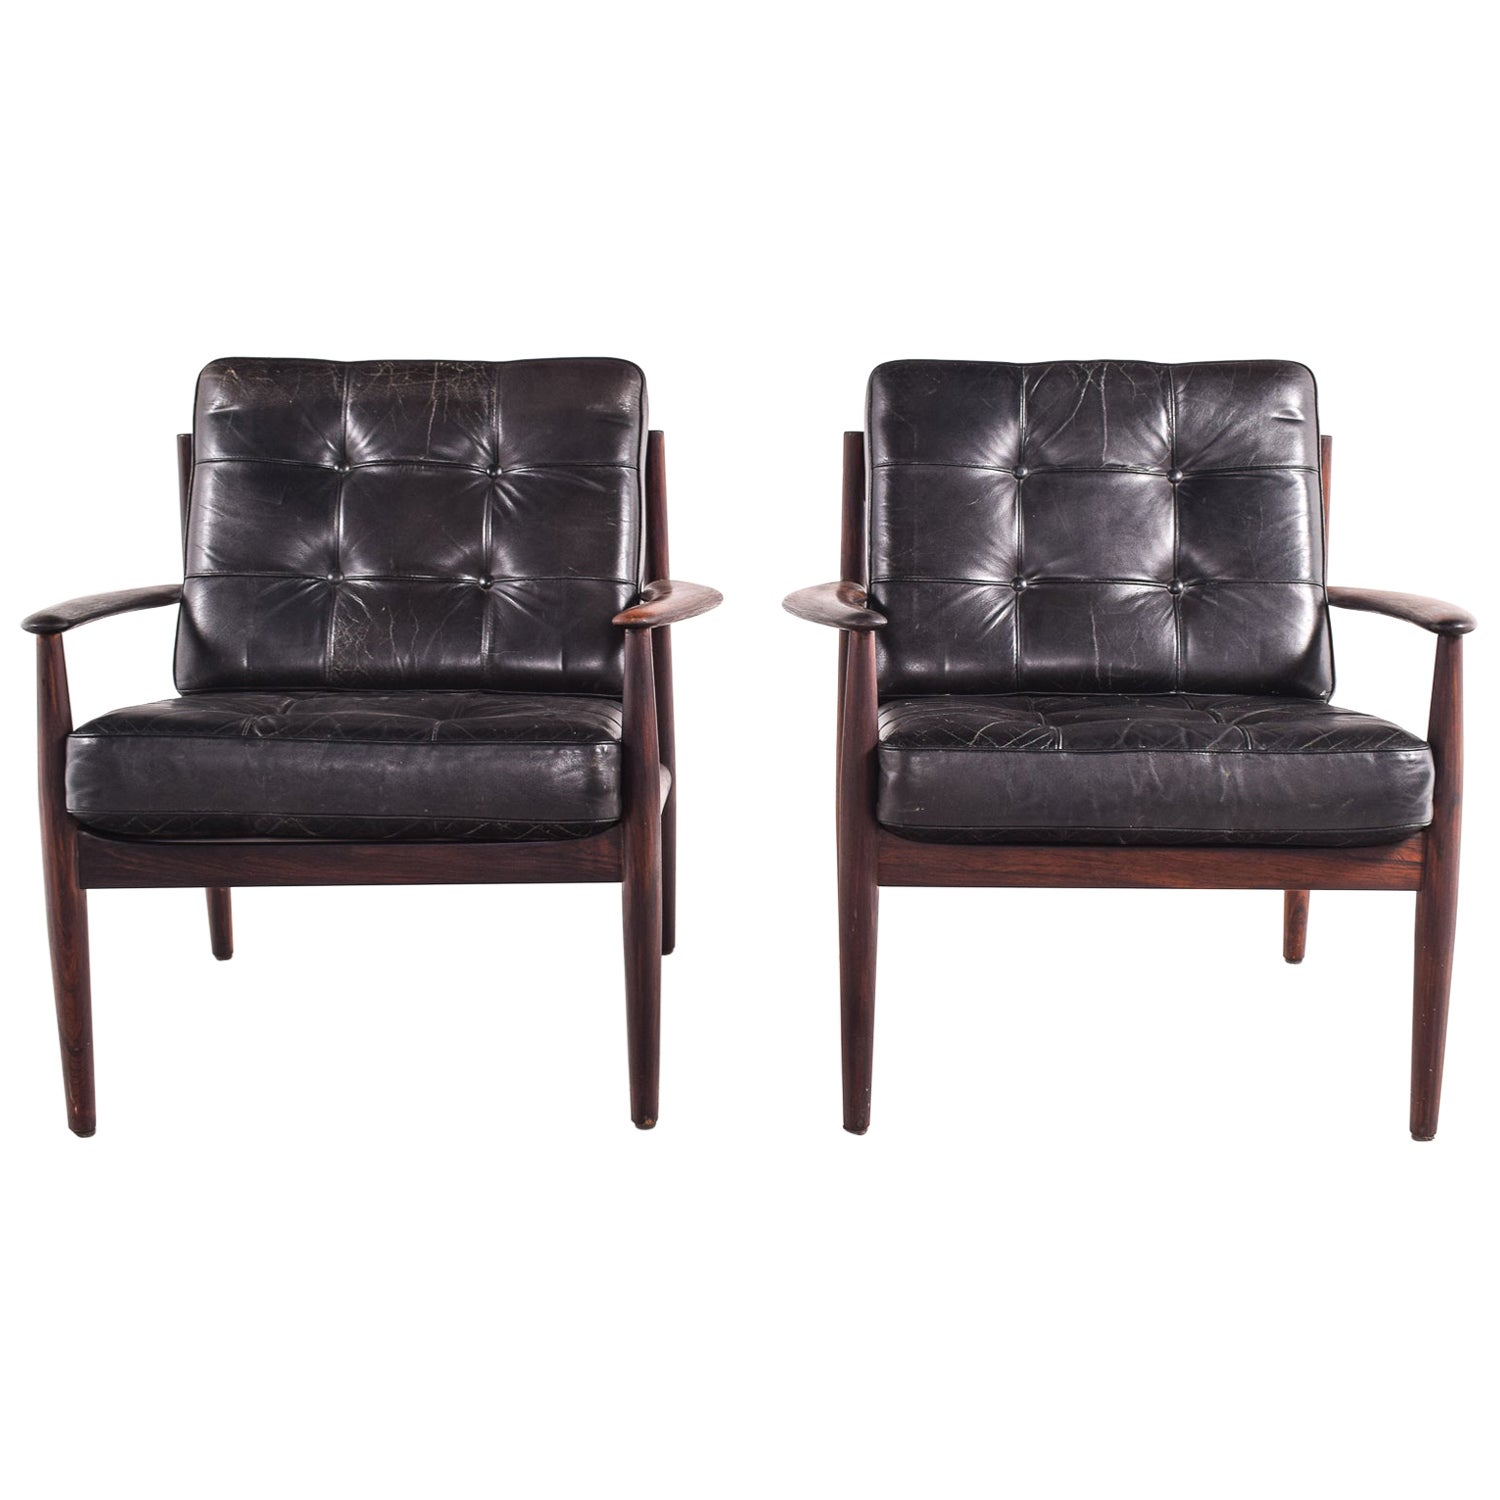 Pair of Rosewood Armchairs by Grete Jalk, Model 118 for France & Son, 1960s